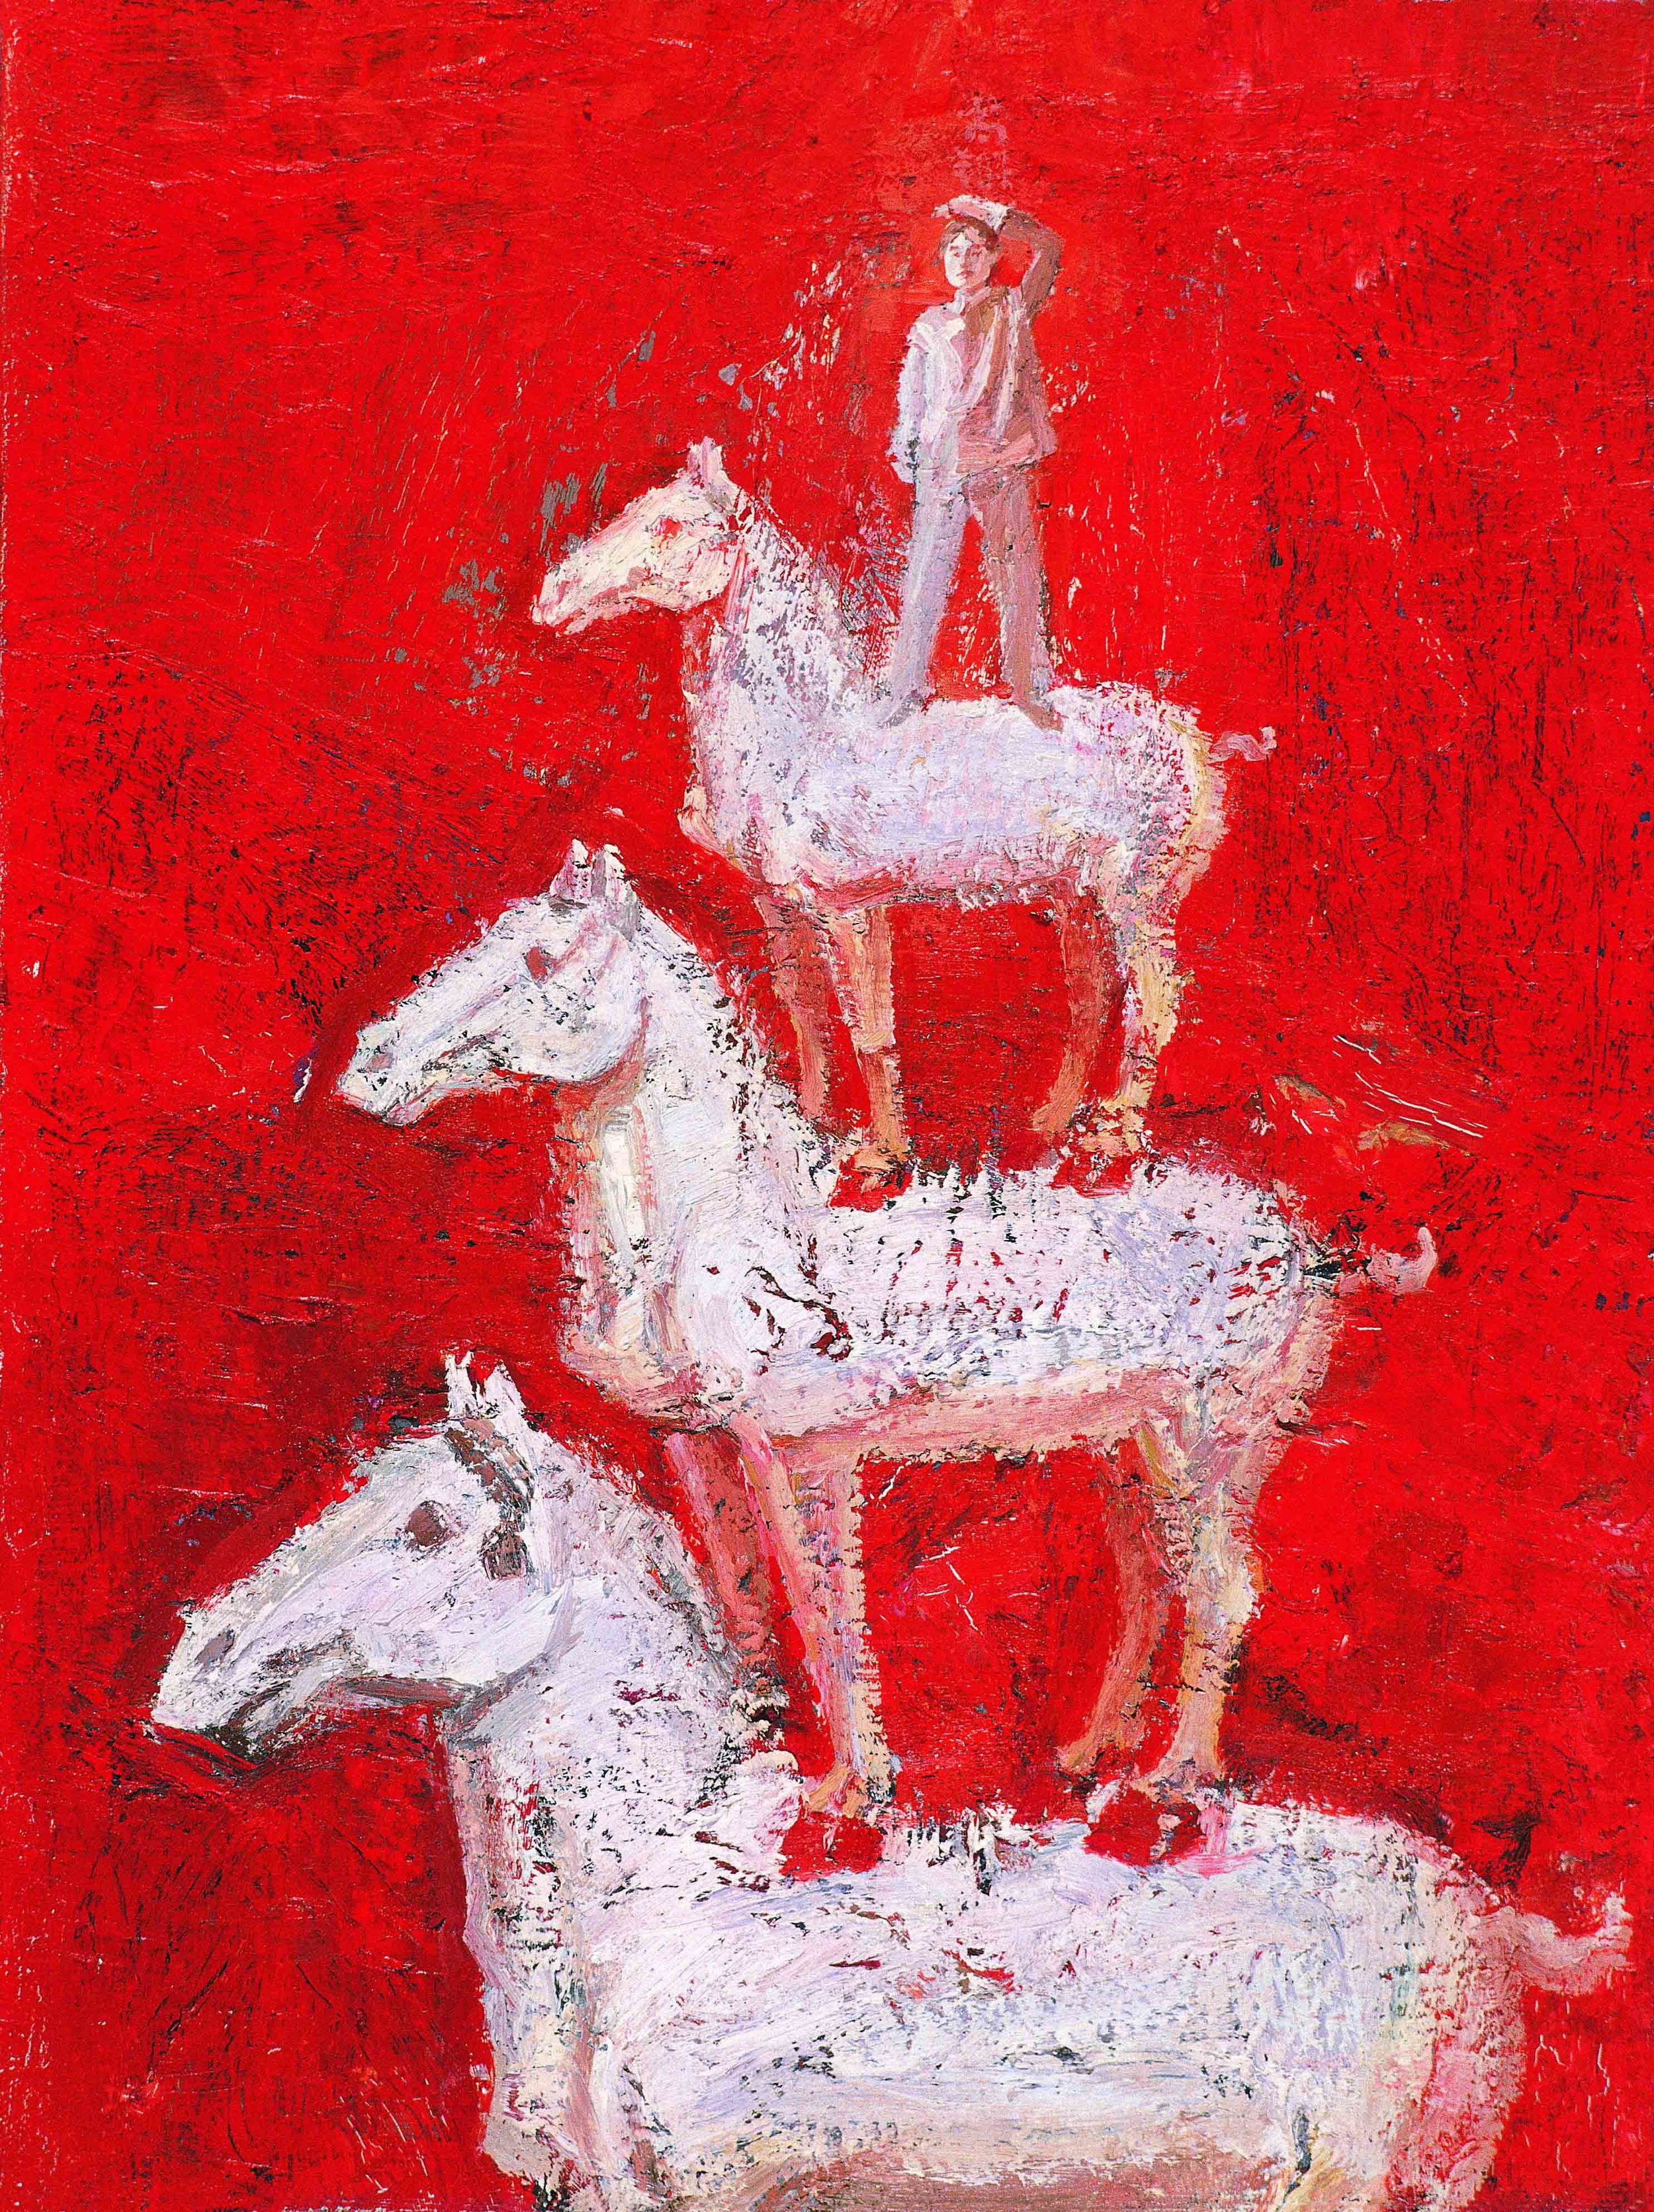 Gao Xiang,  Horse Pagoda , 2010, oil and acrylic on canvas, 61cm x 46cm